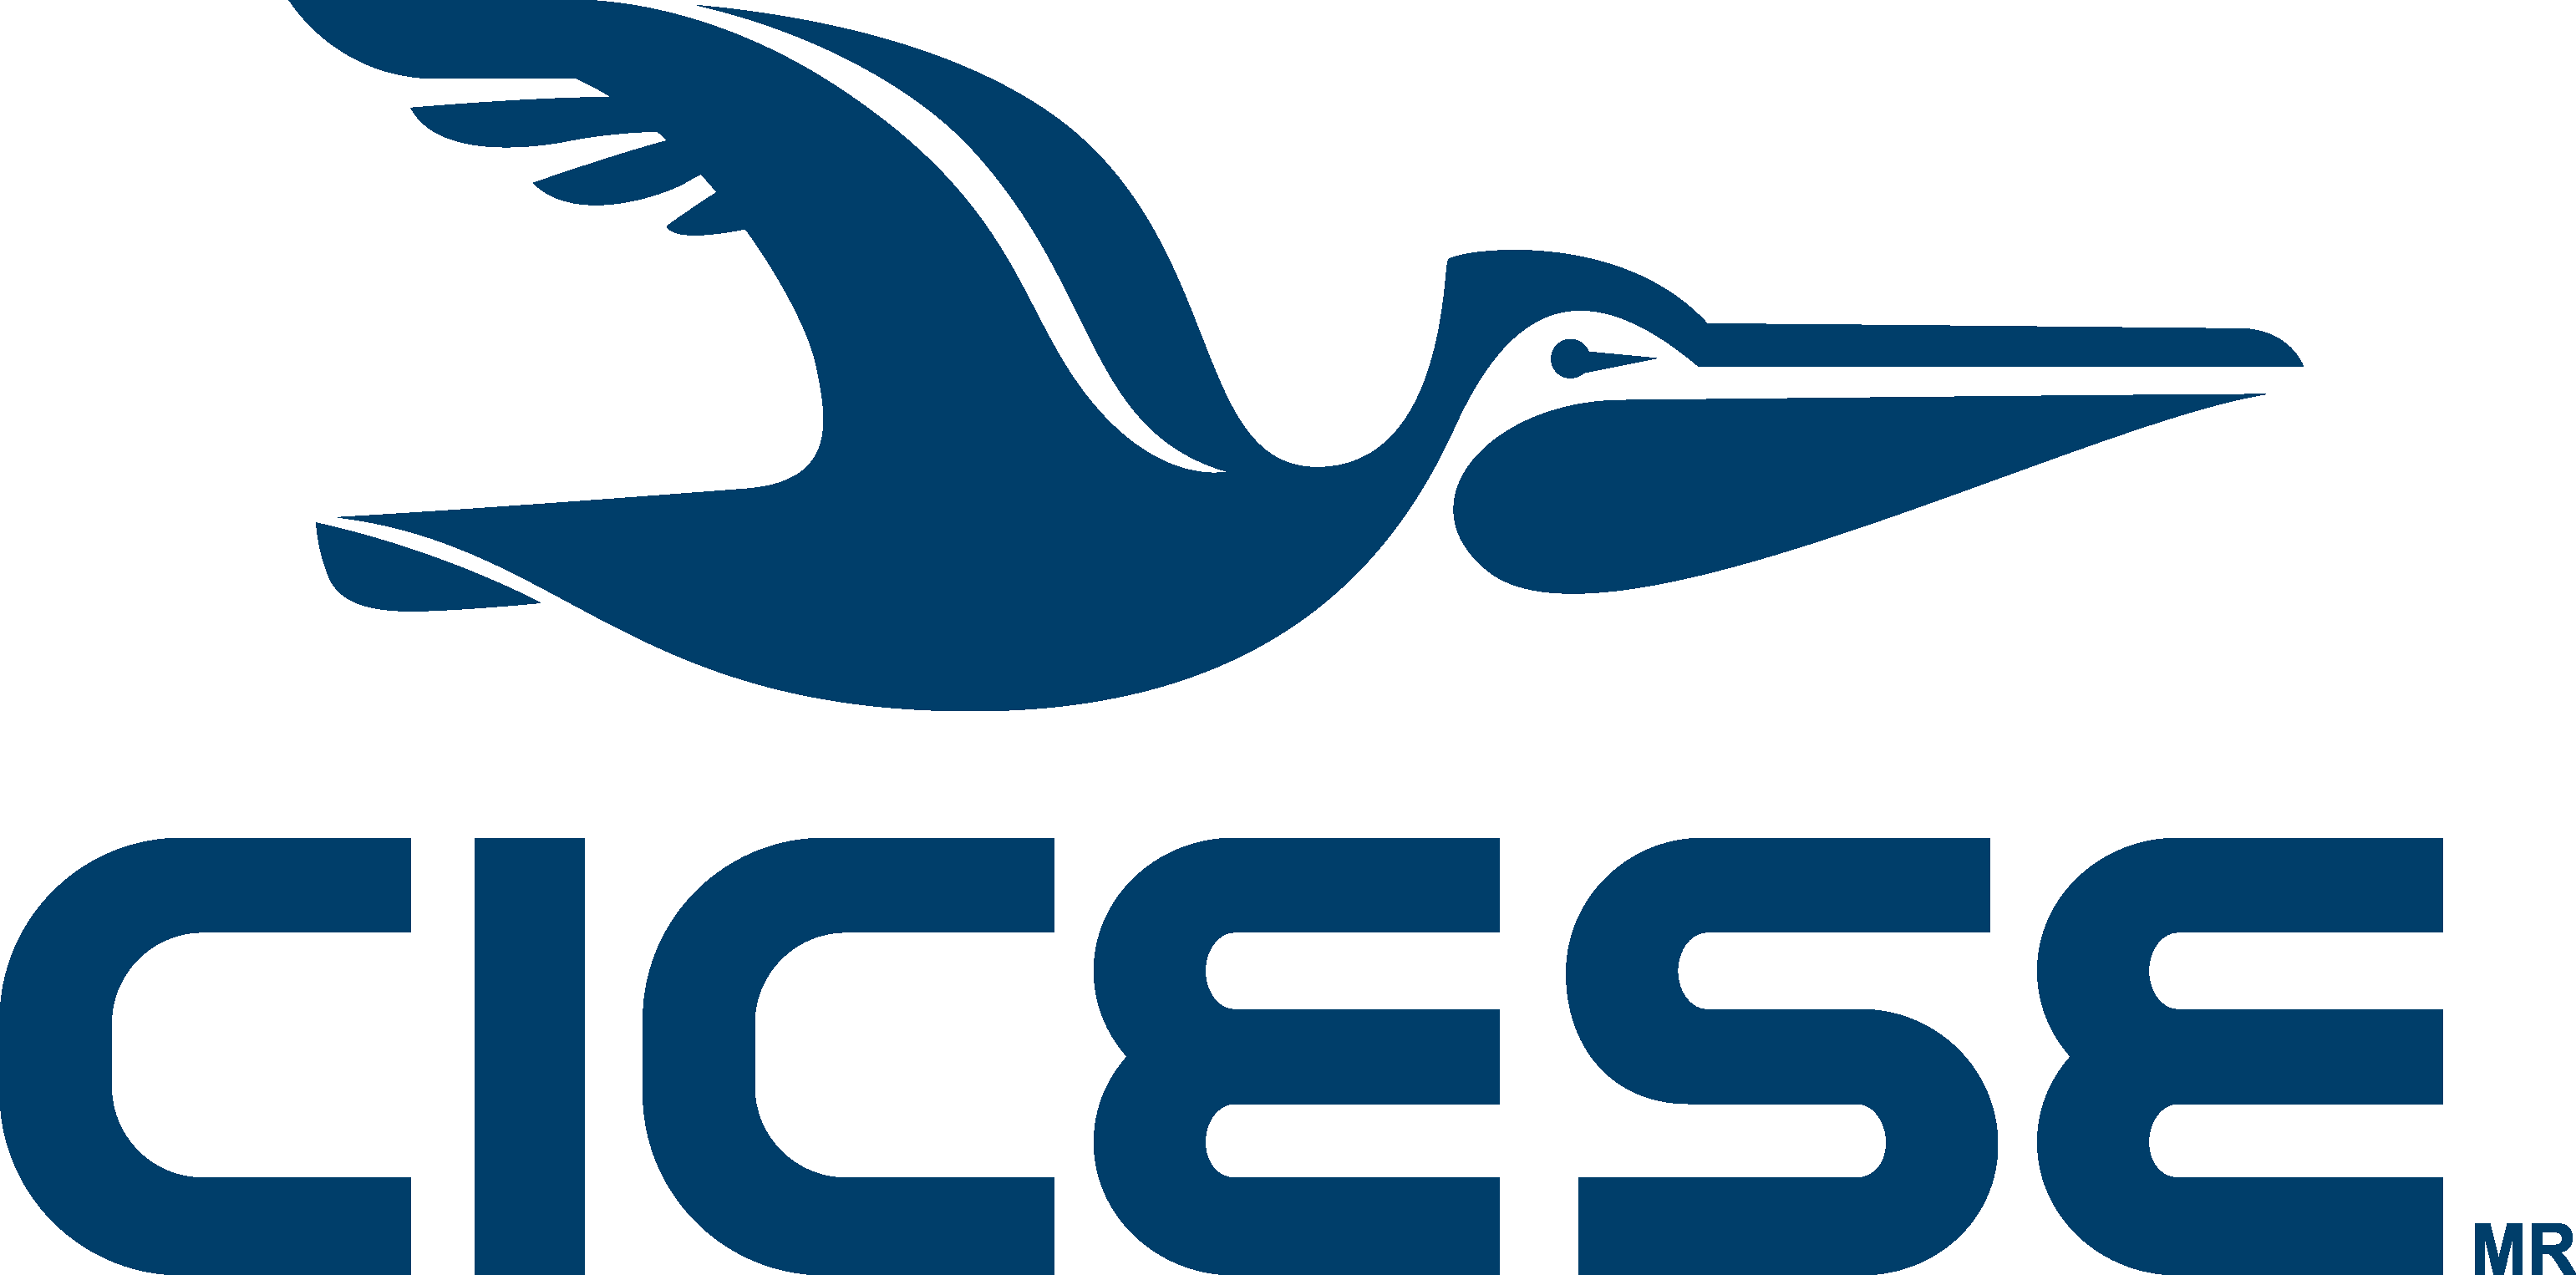 Image result for cicese